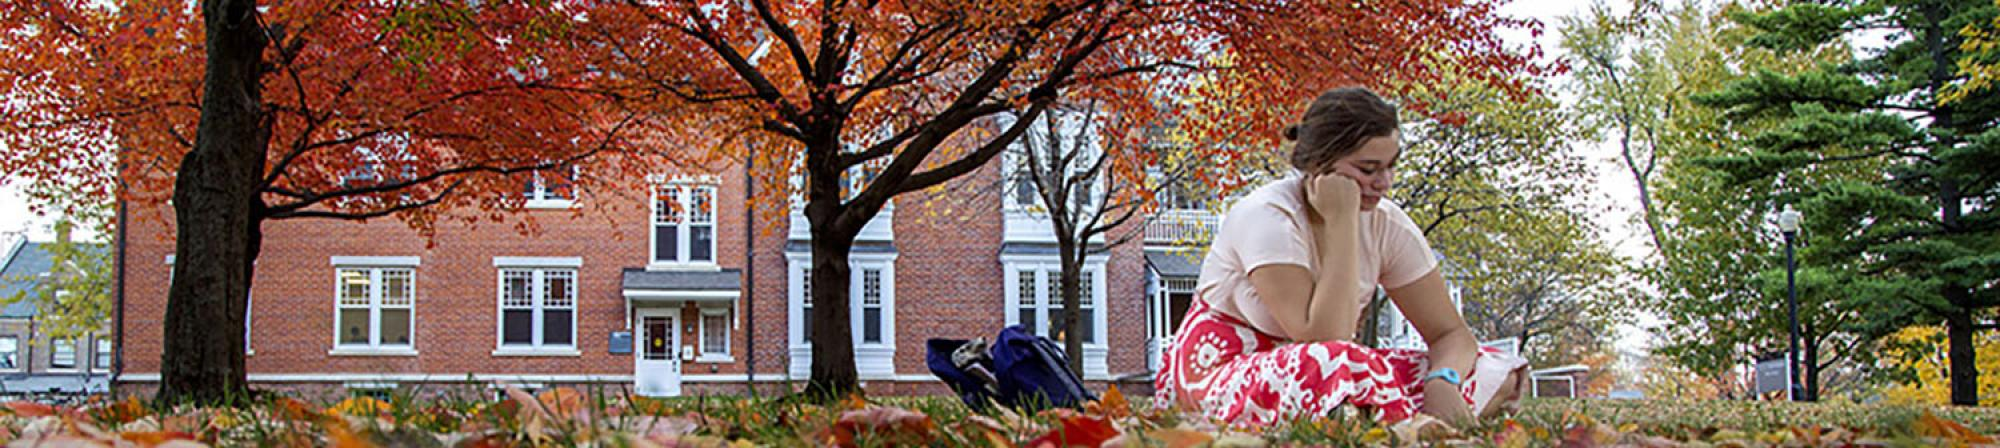 Student studies outdoors on a colorful fall day